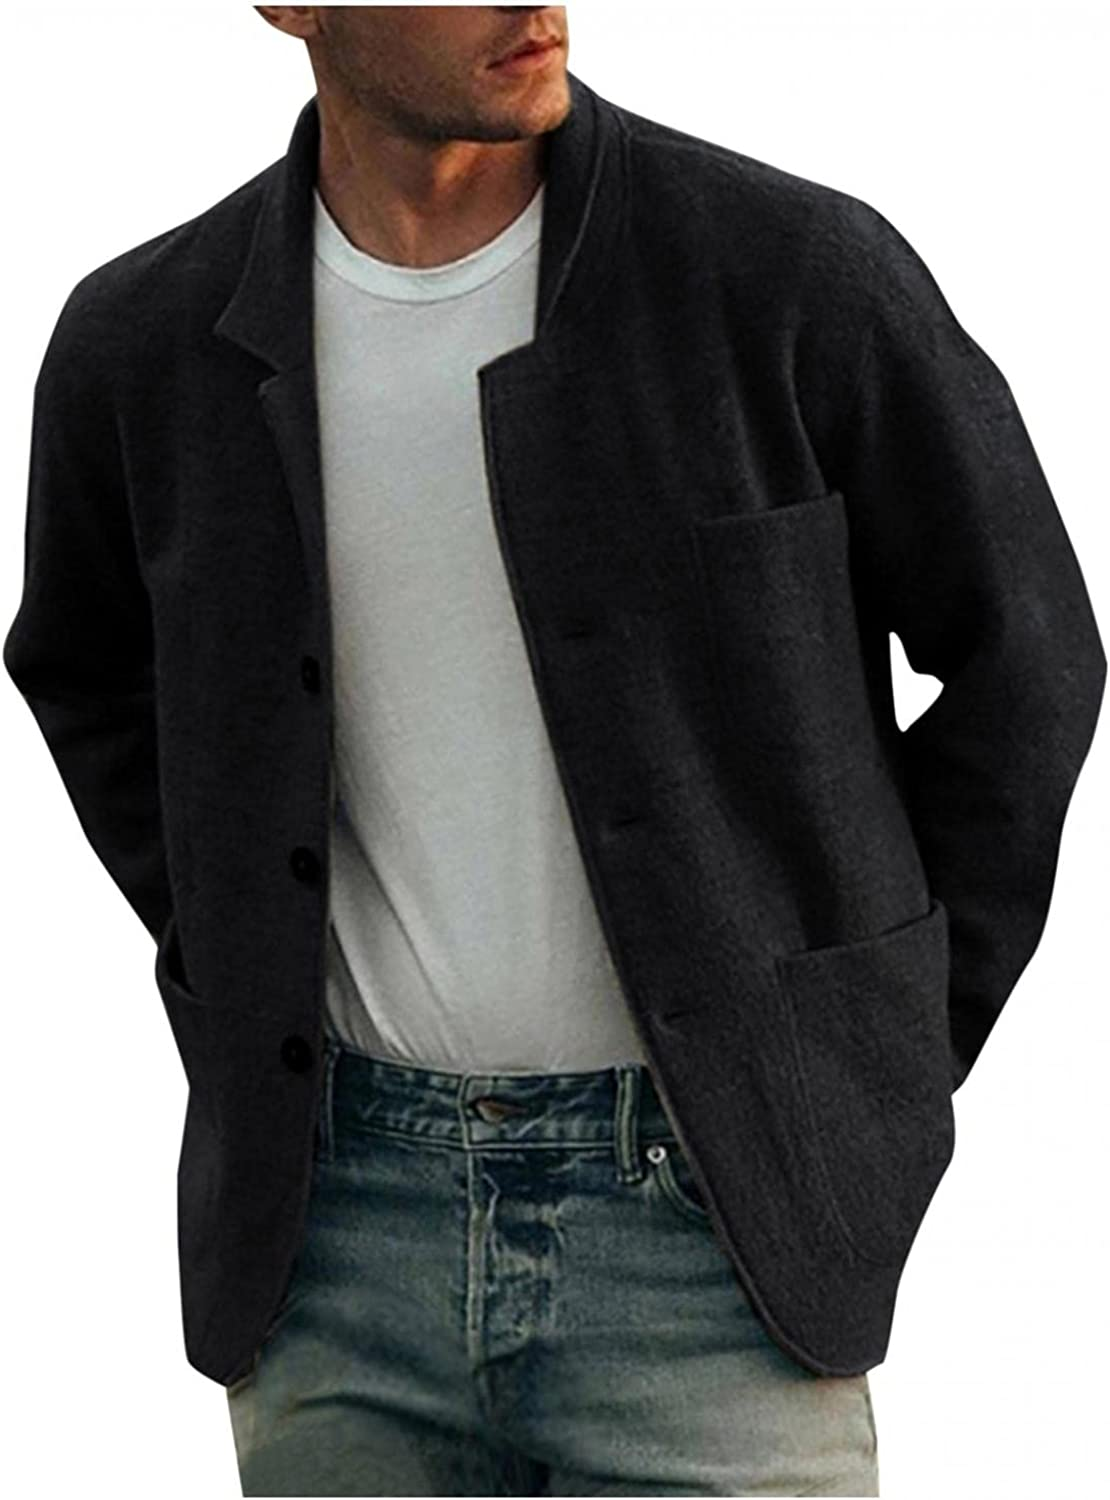 Men's Corduroy Jackets Stand Collar Single Breasted Peacoats Classic Wool Blend Button Down Overcoat Casual Outdoor Top